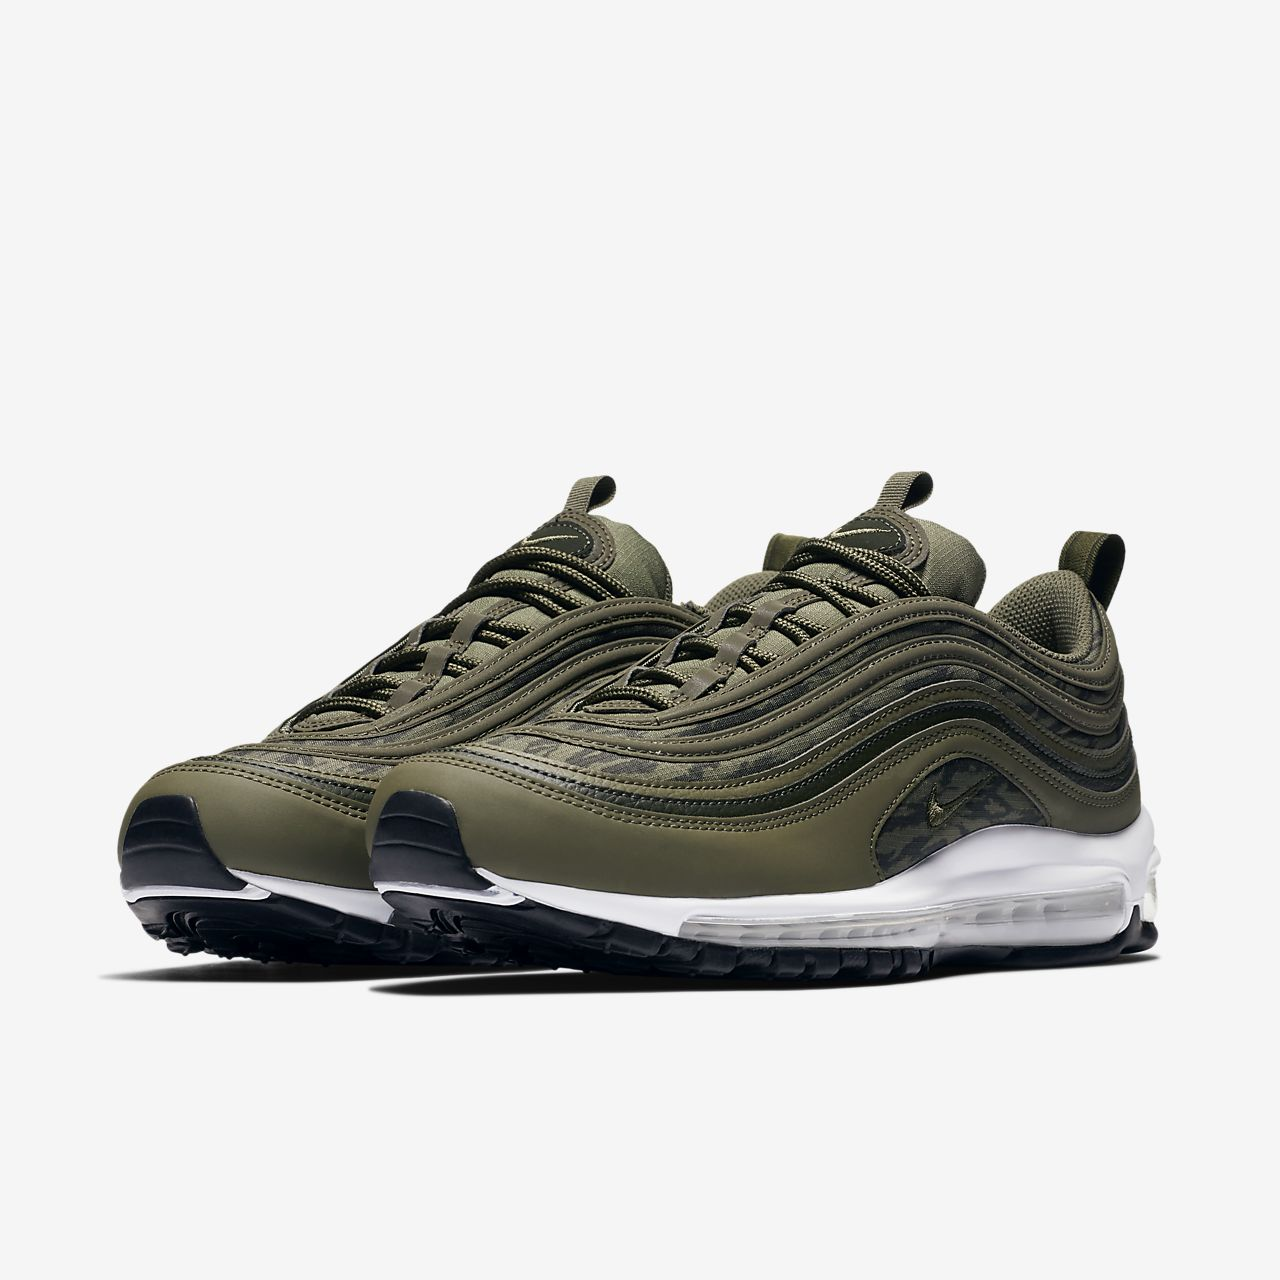 Nike Air Max 97 Lx Mannen Loopschoenen Outdoor Sport